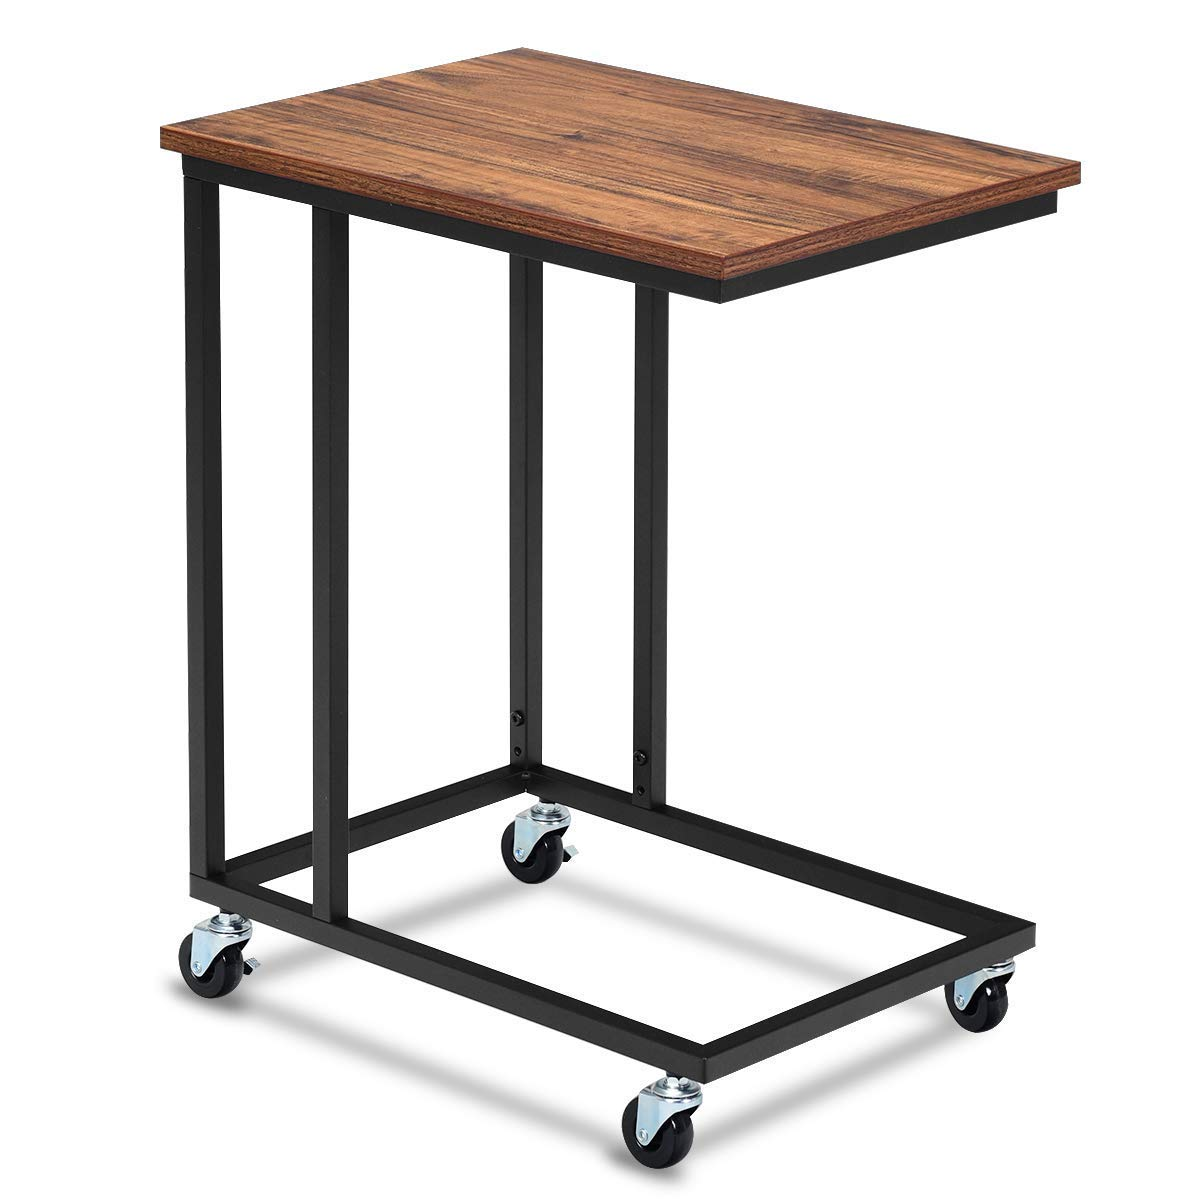 Tangkula Mobile Sofa Side Table, Movable Snack Table for Coffee Tablet, Rustic End Table with Metal Frame, Rolling Casters with Brakes, Portable Table for Couch Bed, Sofa, Living Room Bedroom Table